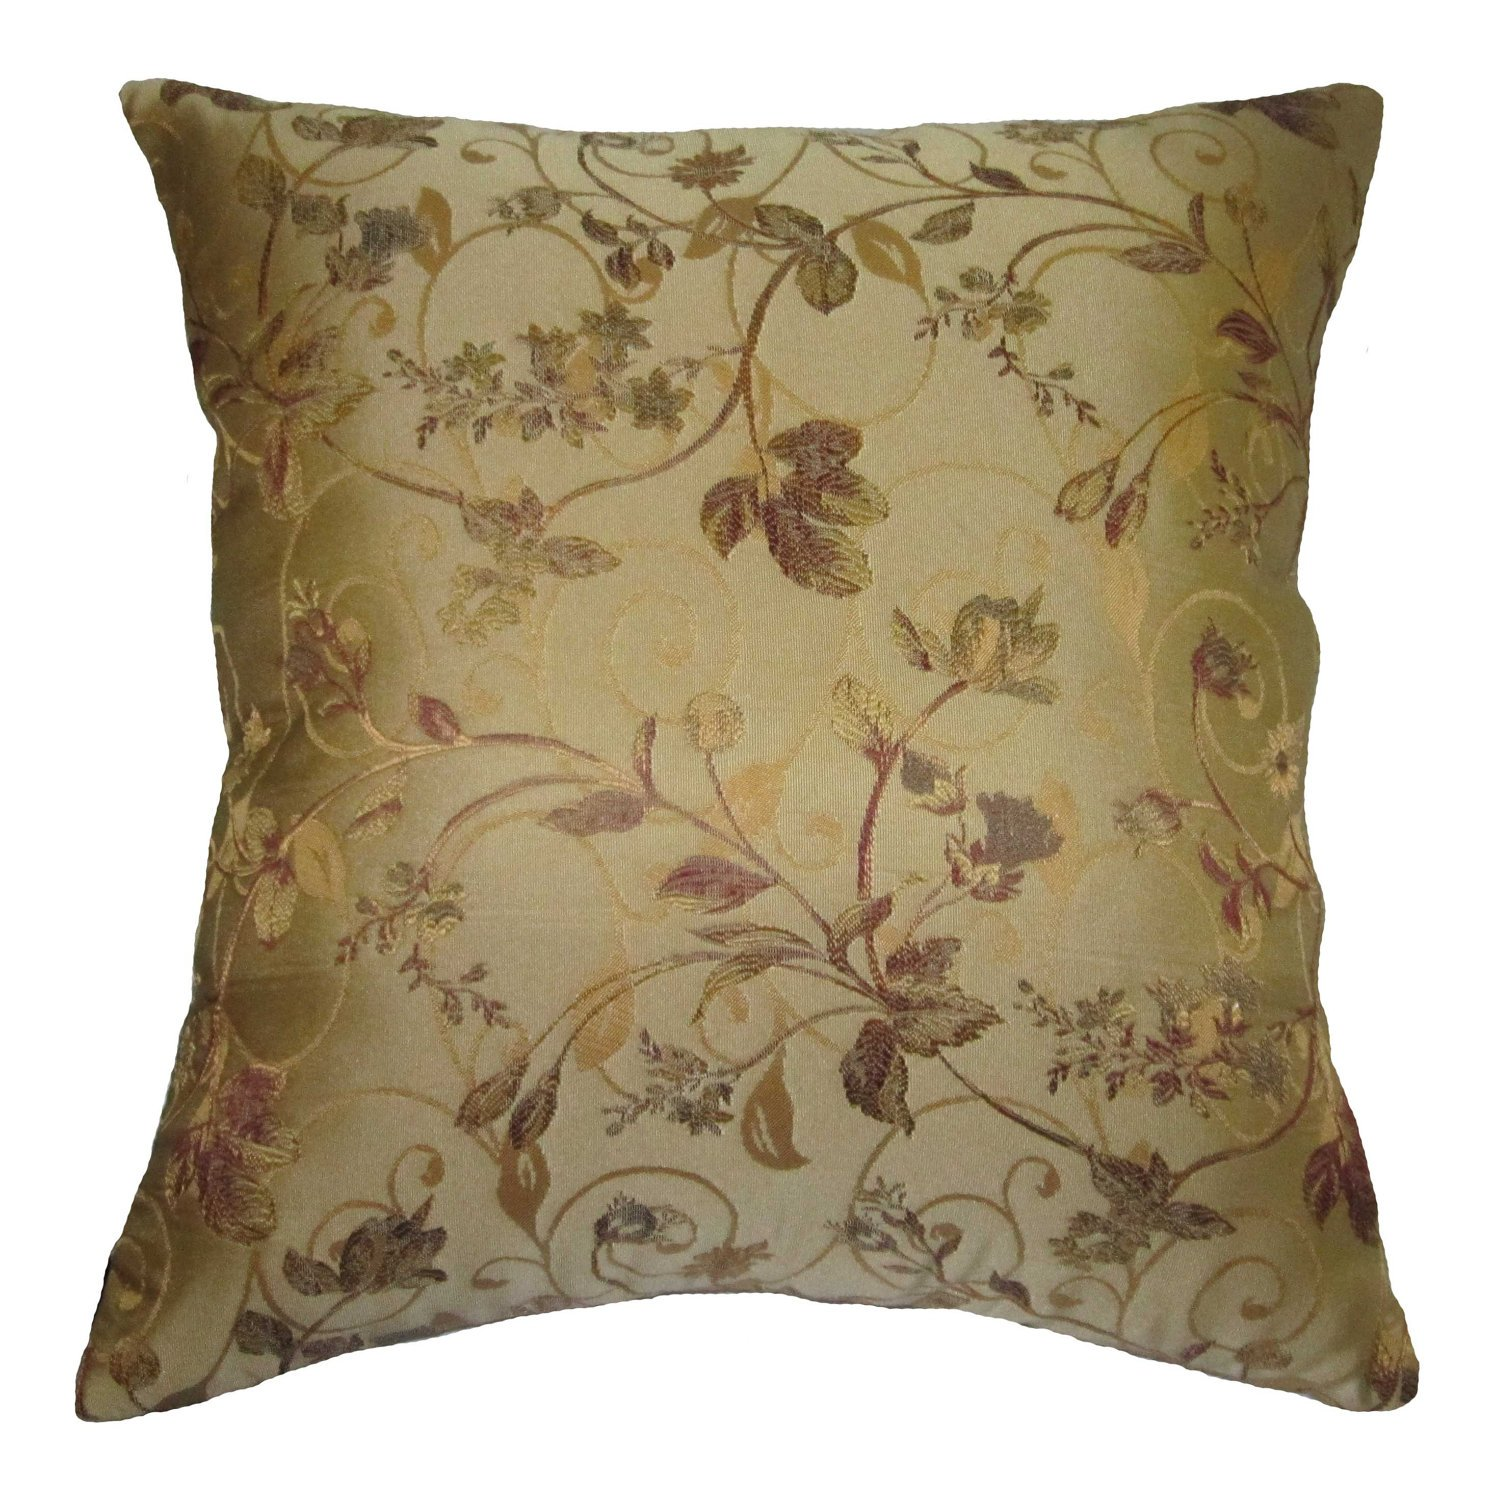 free multiple shipping available over gold pillows pillow holiday inch rizzy home collection patterns orders on throw product overstock garden